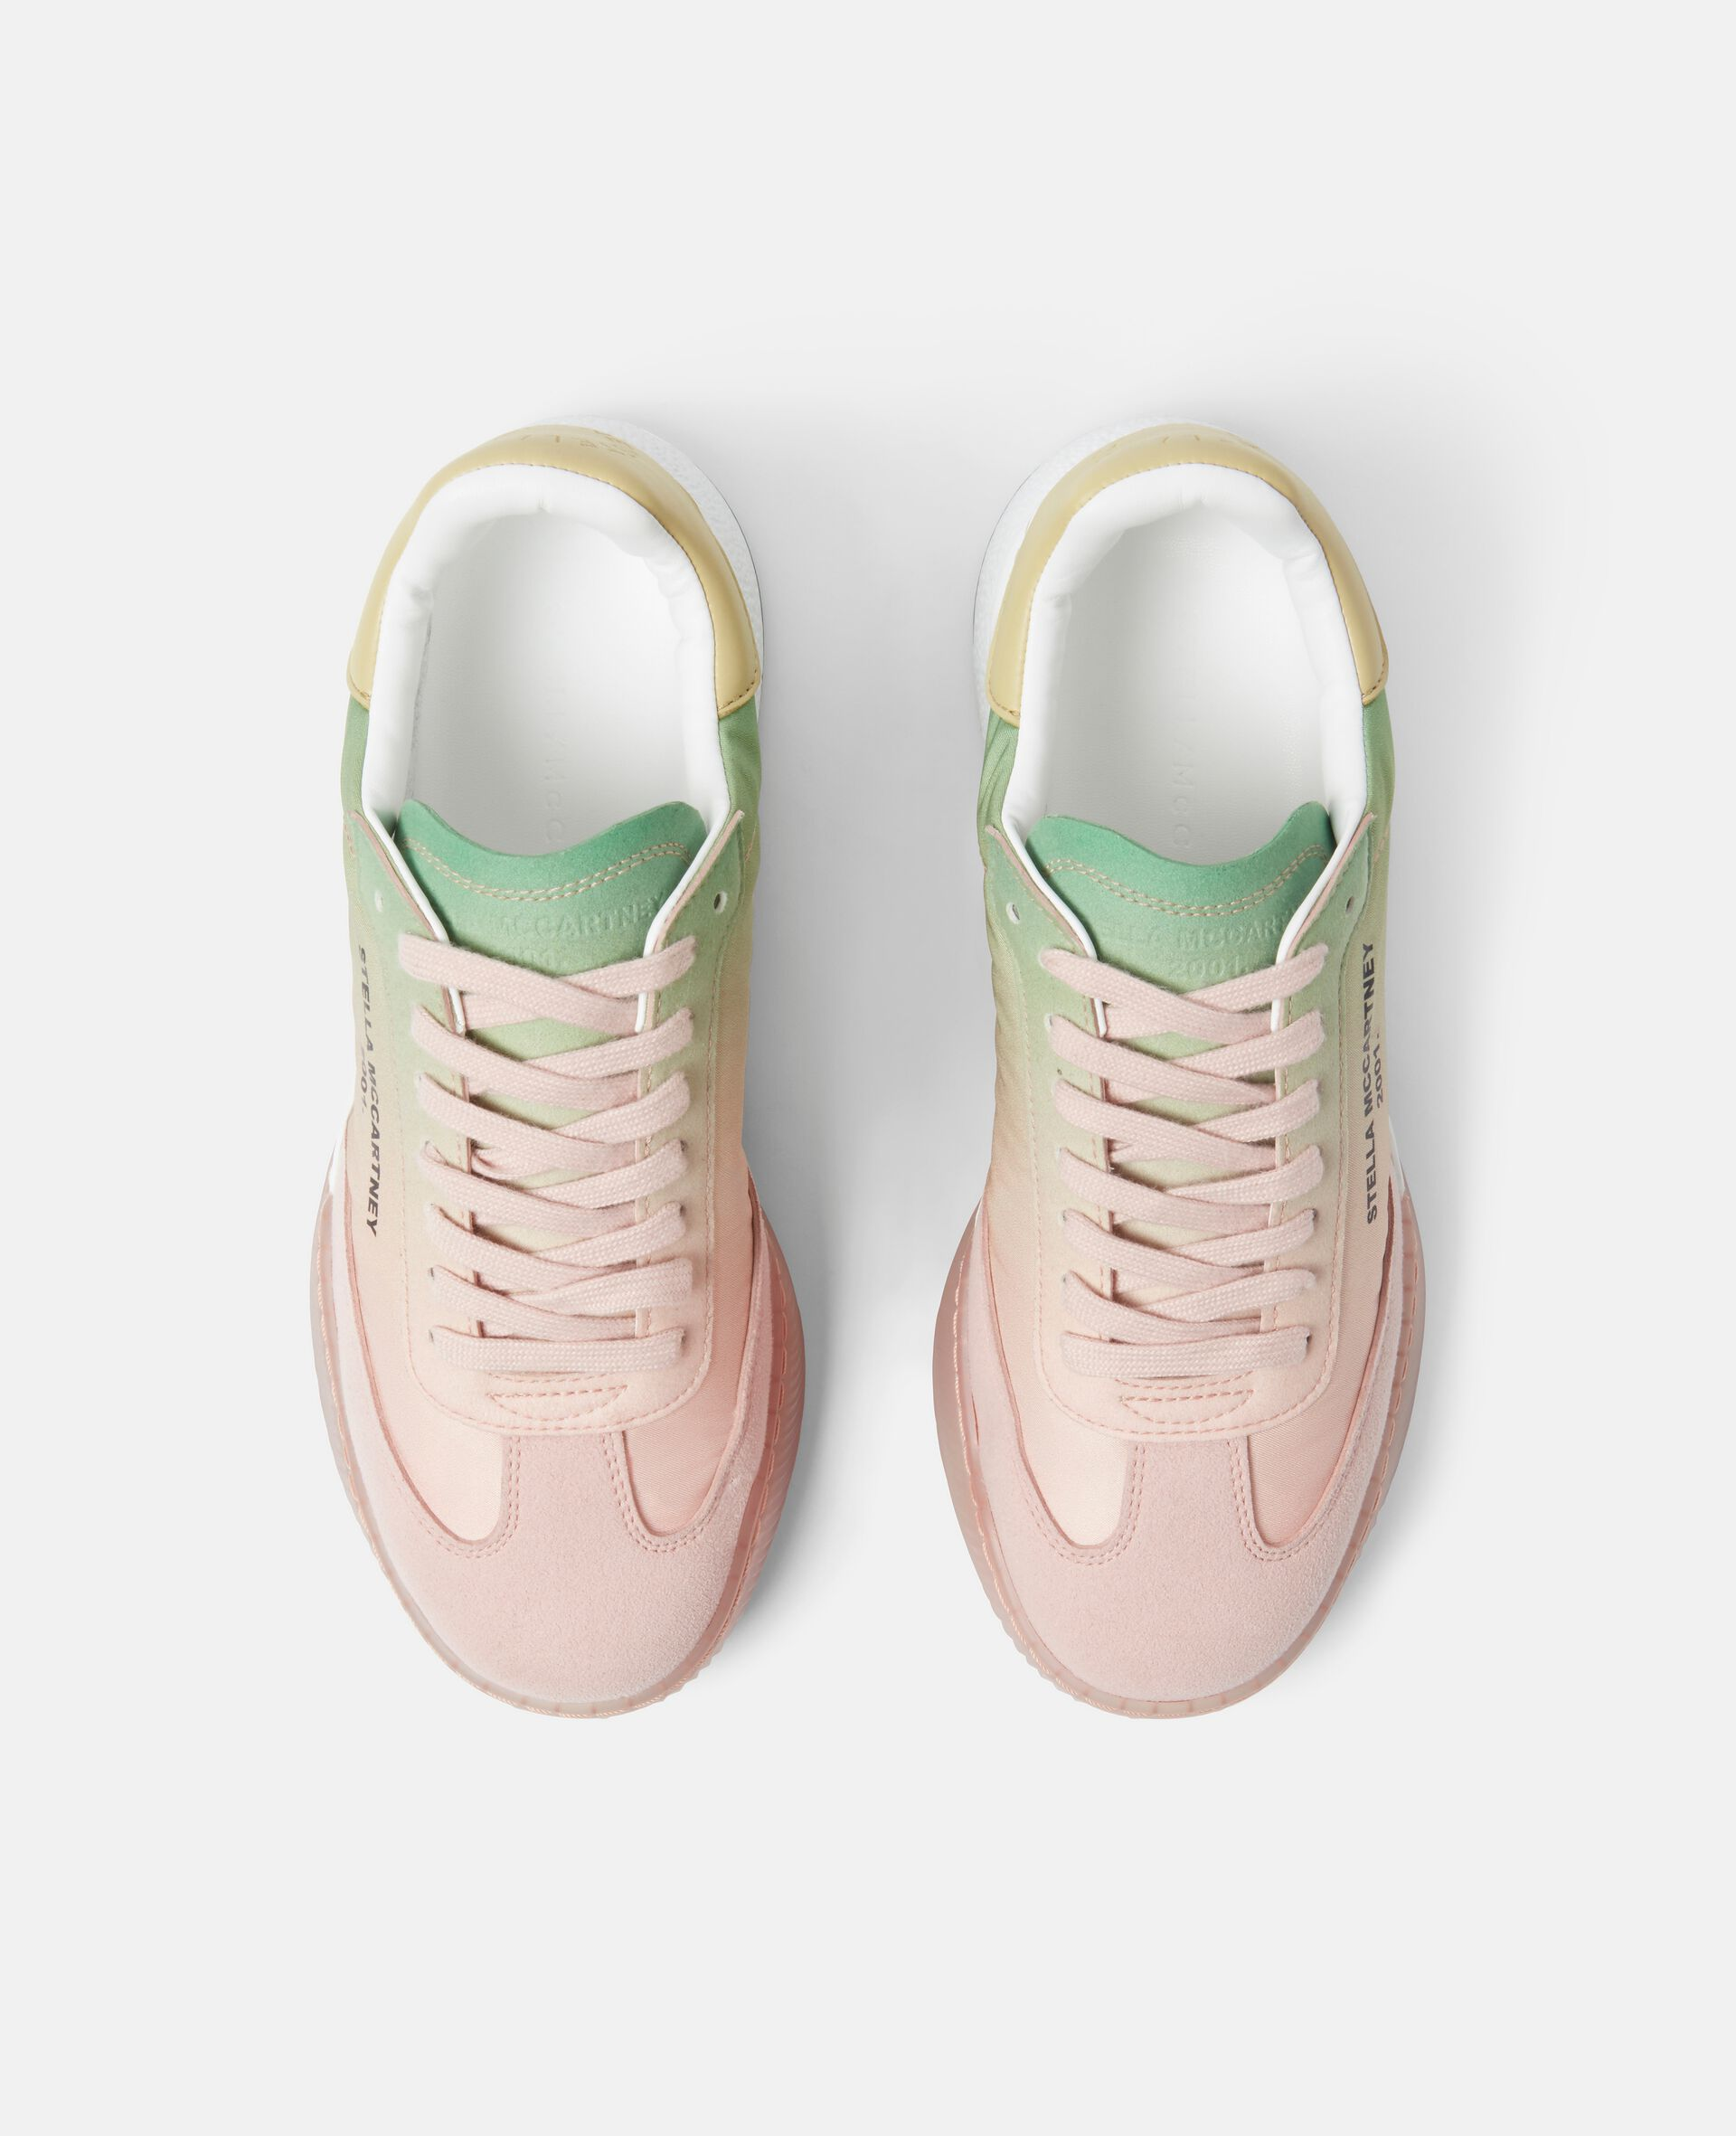 Loop Lace-up Sneakers-Pink-large image number 3